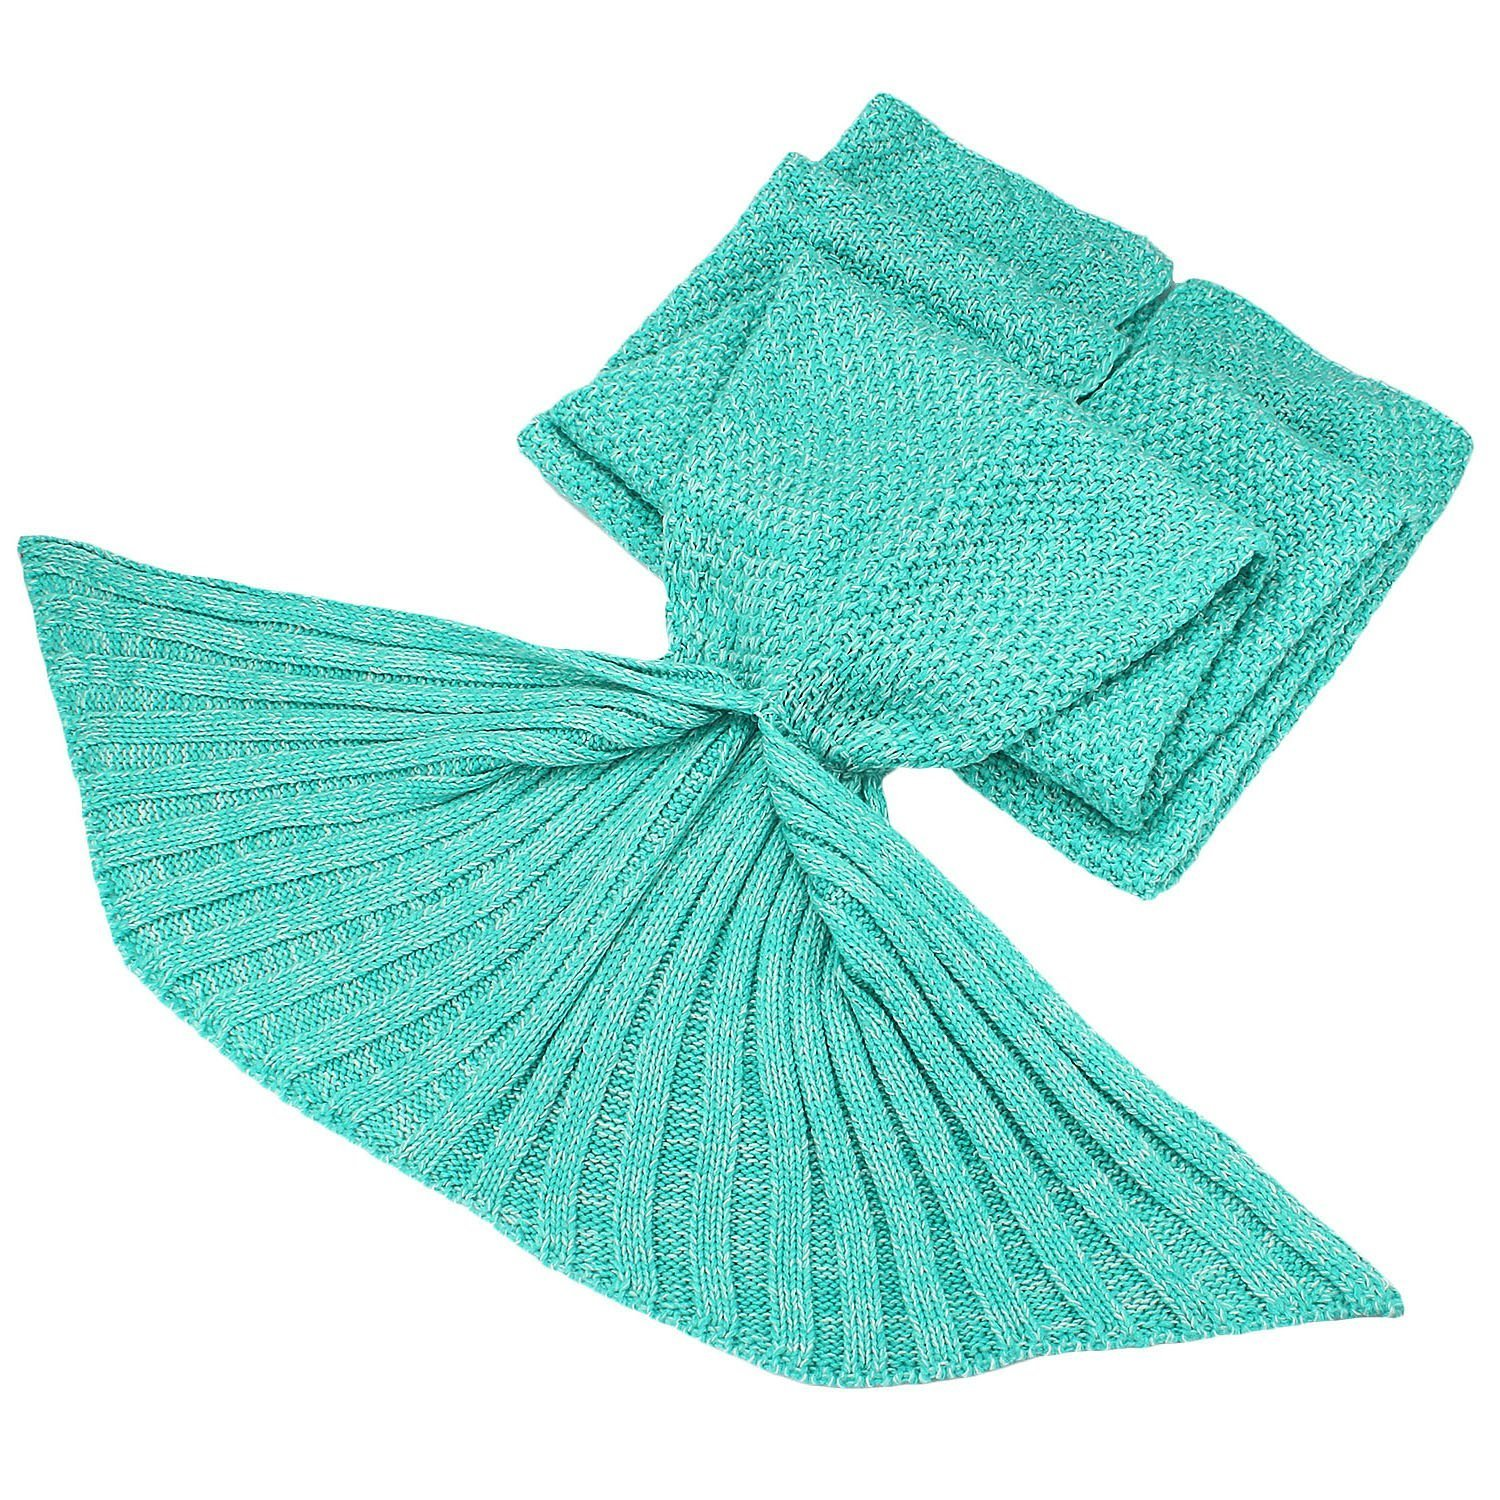 Clearance Sale!!! Mermaid Tail Blanket for Adult Kids Soft HandCrochet Sleeping Bag for Girls Women in Sofa Bed Living Room (Adult, Plain- Mint)